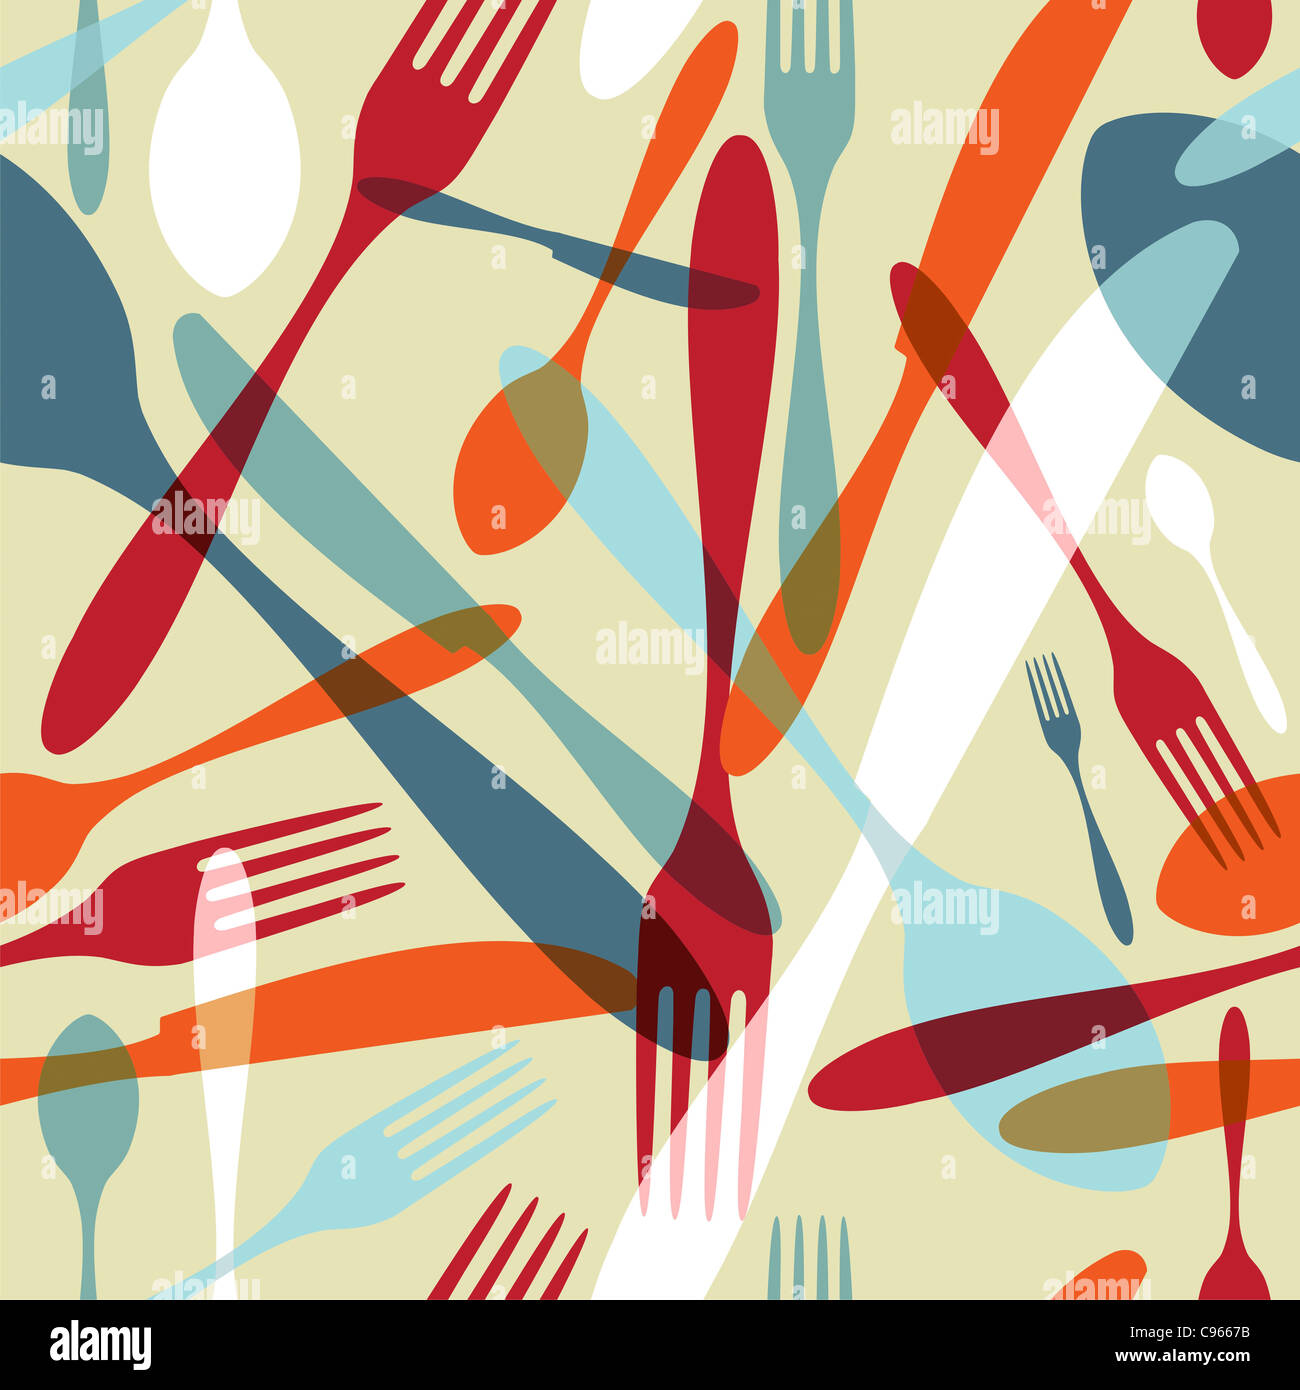 Transparency silverware icons seamless pattern background. Fork, knife and spoon silhouettes on different sizes and colors. Vector file avaliable. Stock Photo